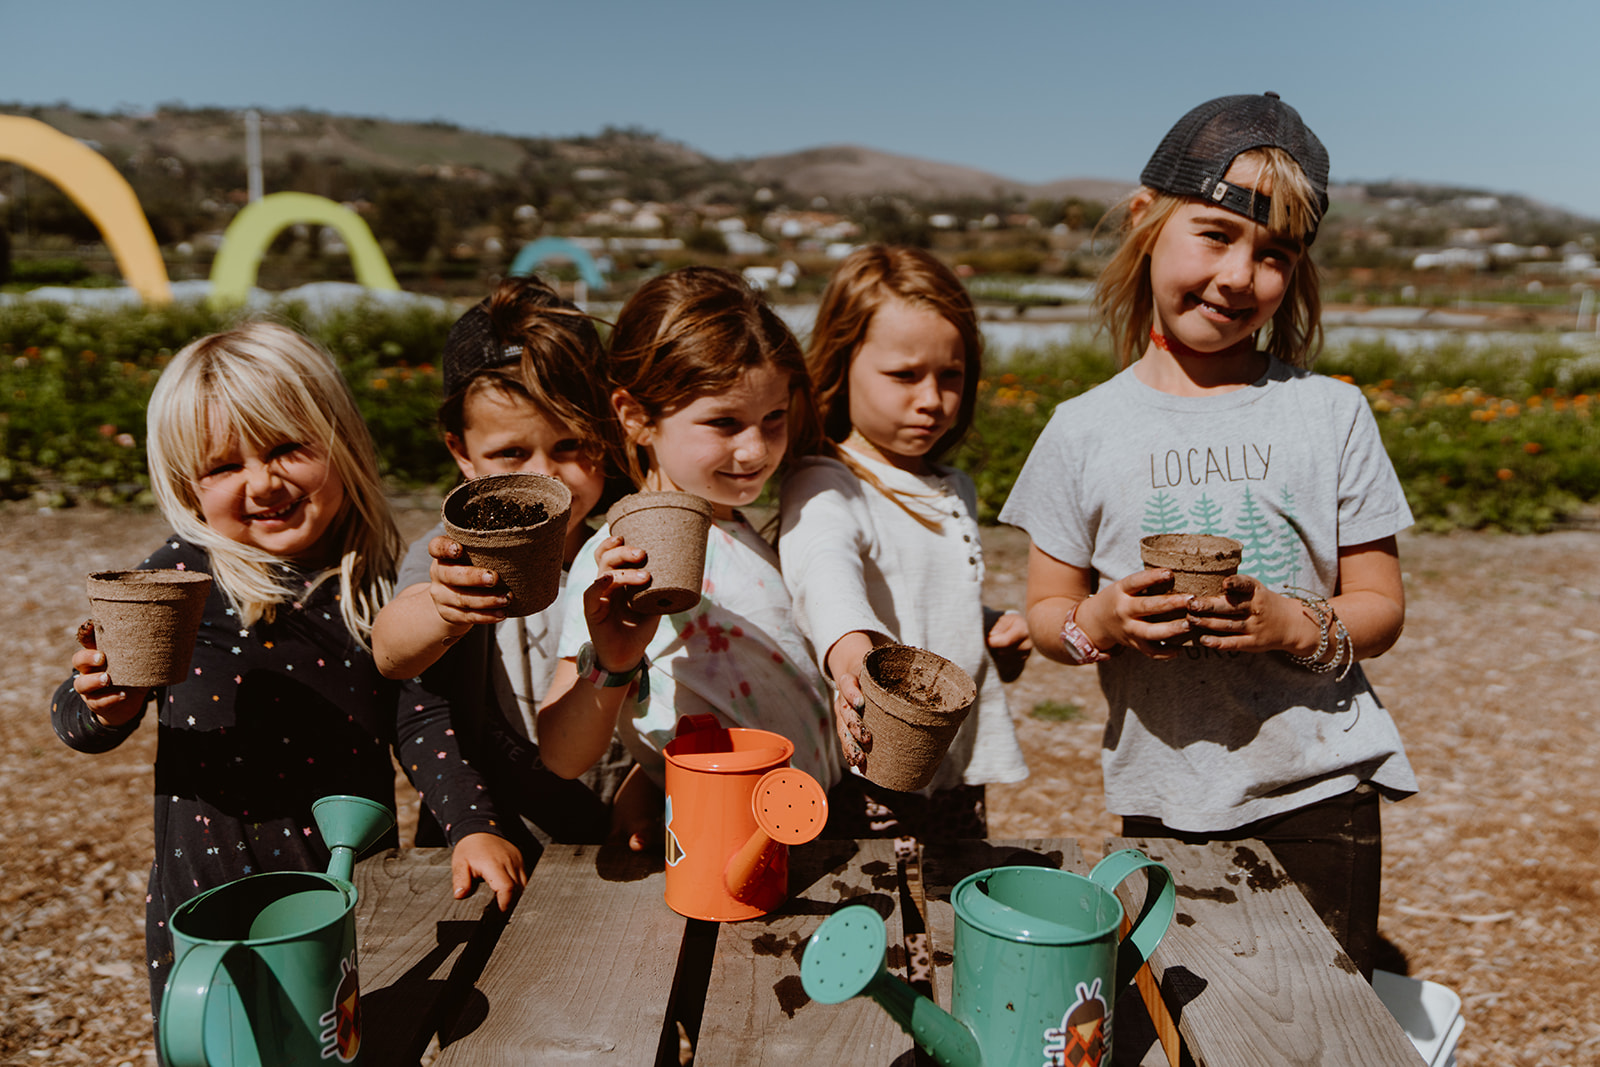 5 children stand at the end of a picnic table holding pots.